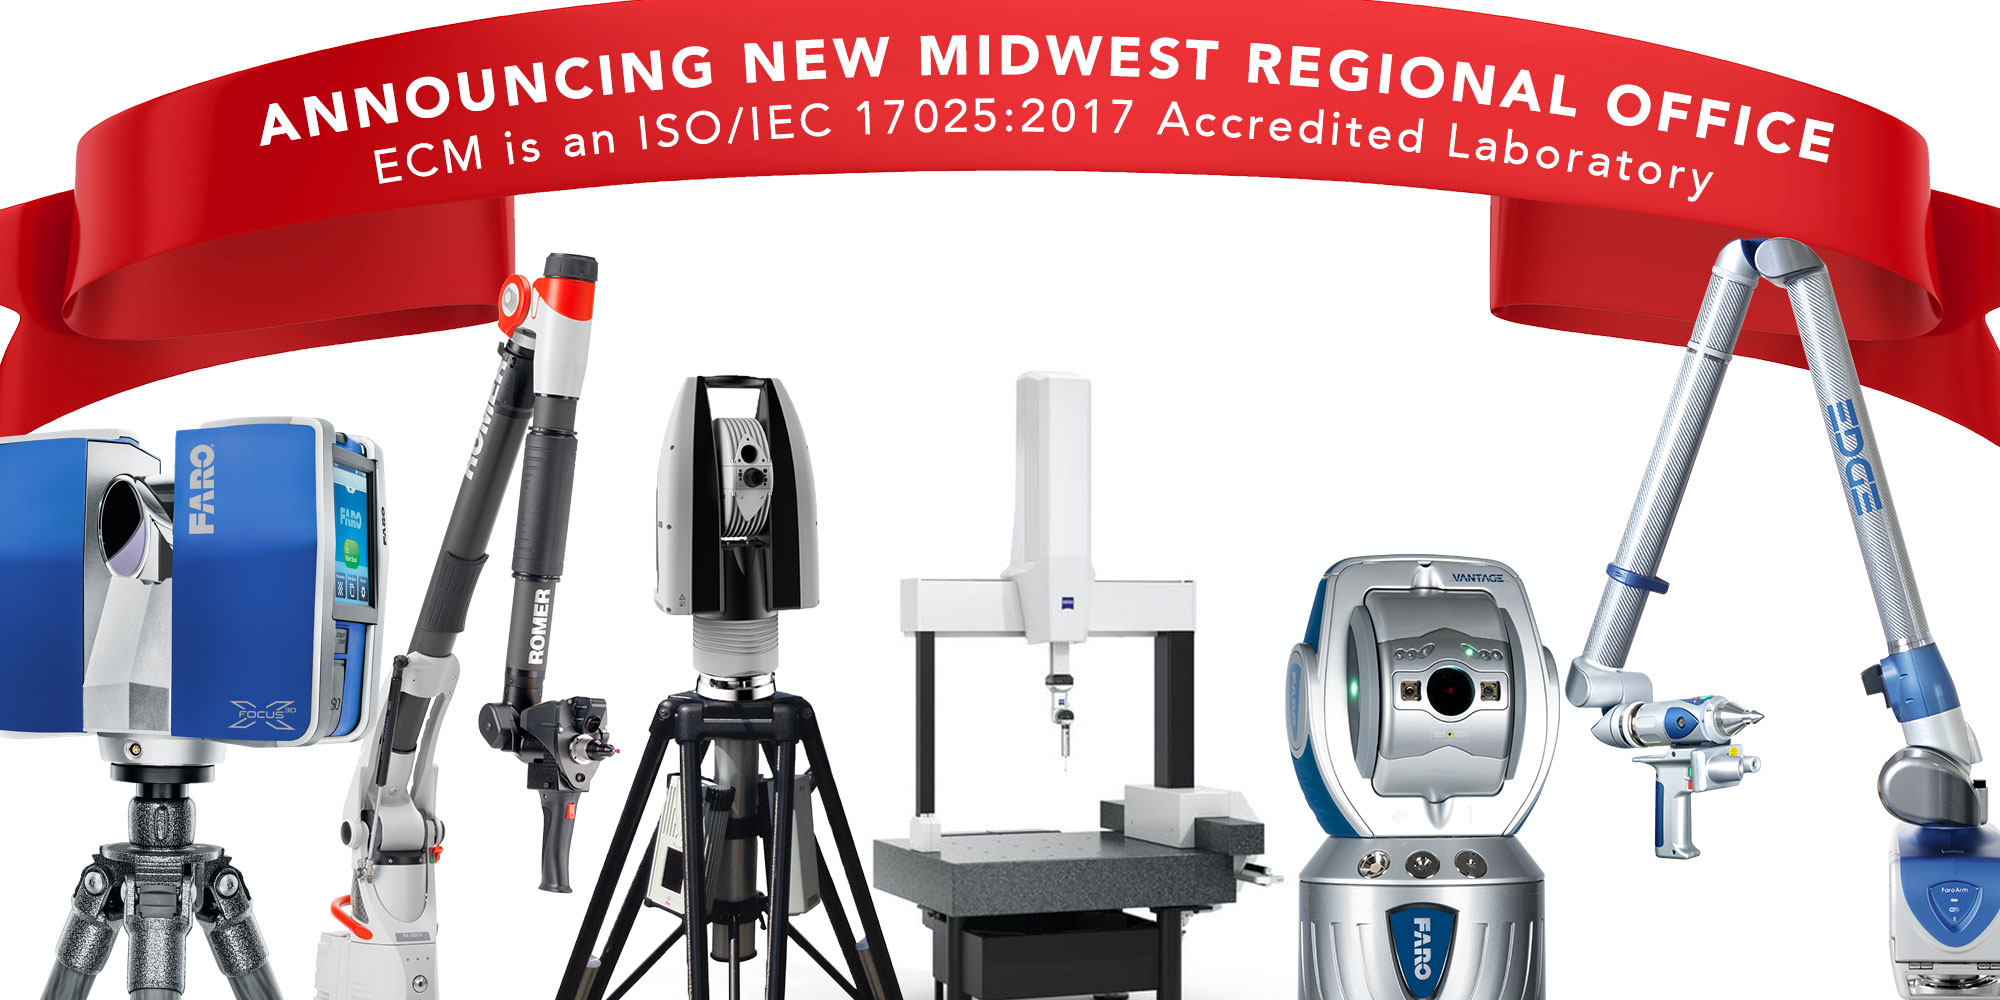 ECM Global Opens Calibration Office in Wixom, Michigan: Expanding Calibration and Services Division in Midwest